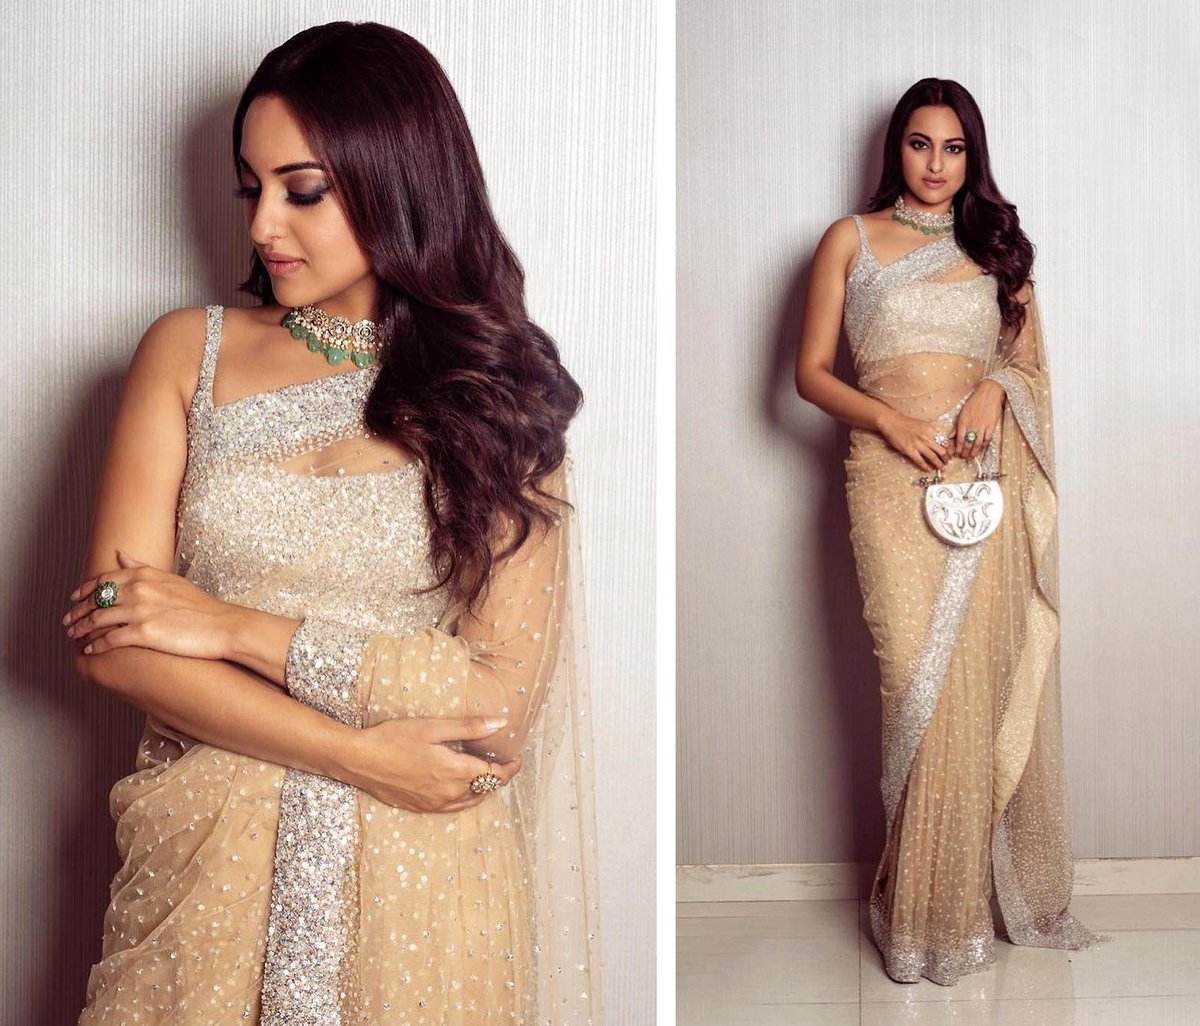 Ranjna On Twitter Sonakshi Sinha Looks Stunning In A Designer Saree At A Wedding Event In Mumbai Image Source Sonakshi Sinha Instagram Sonakshisinha Designersaree Shimmeringsaree Saree Partywear Indianpartywear Weddingwear Designerwear